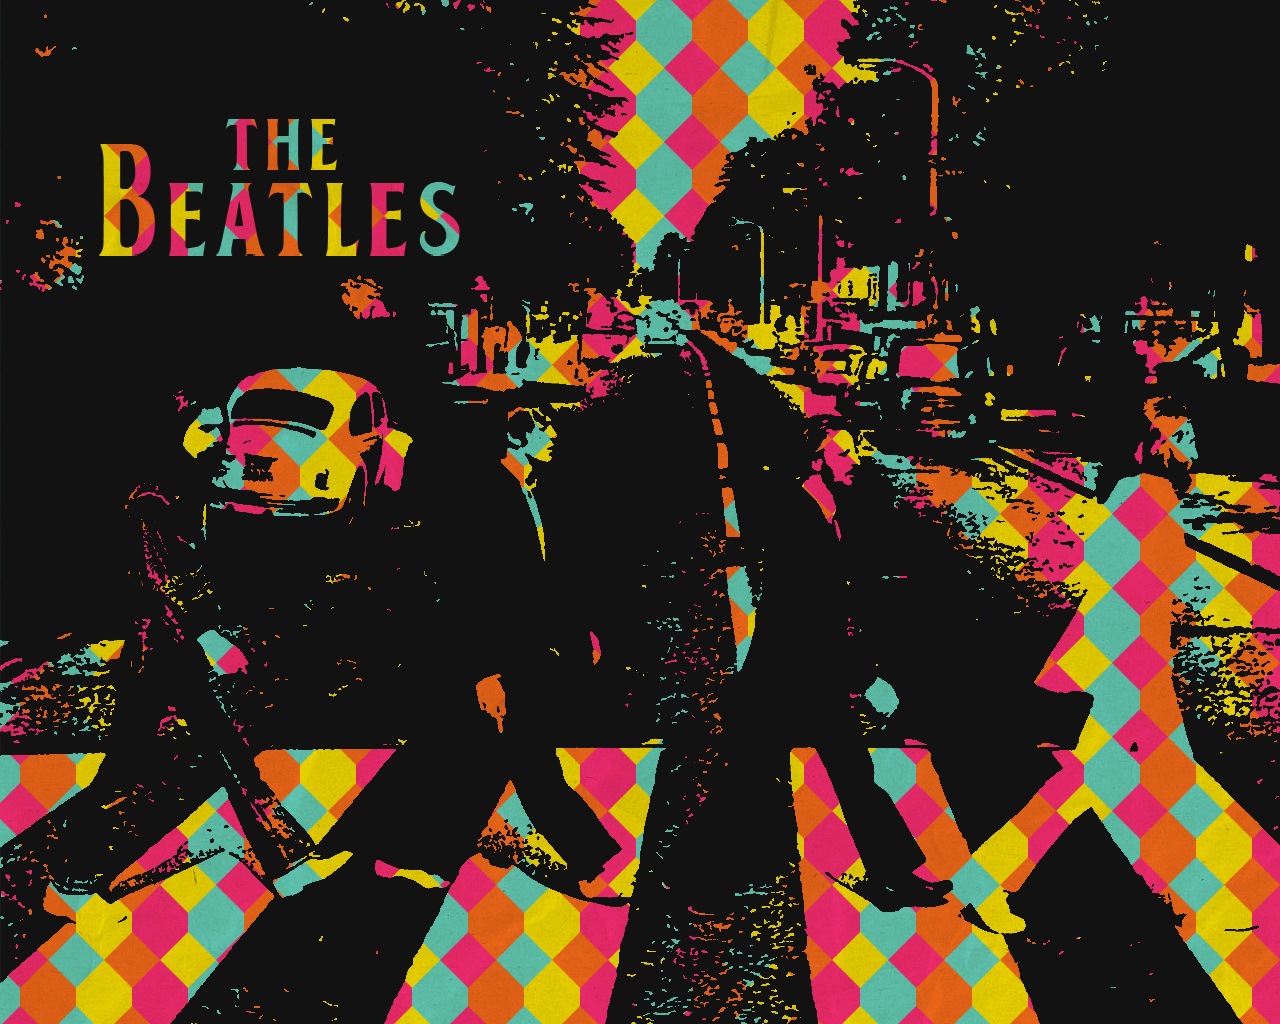 Free Download The Best The Beatles Wallpaper Ever The Beatles